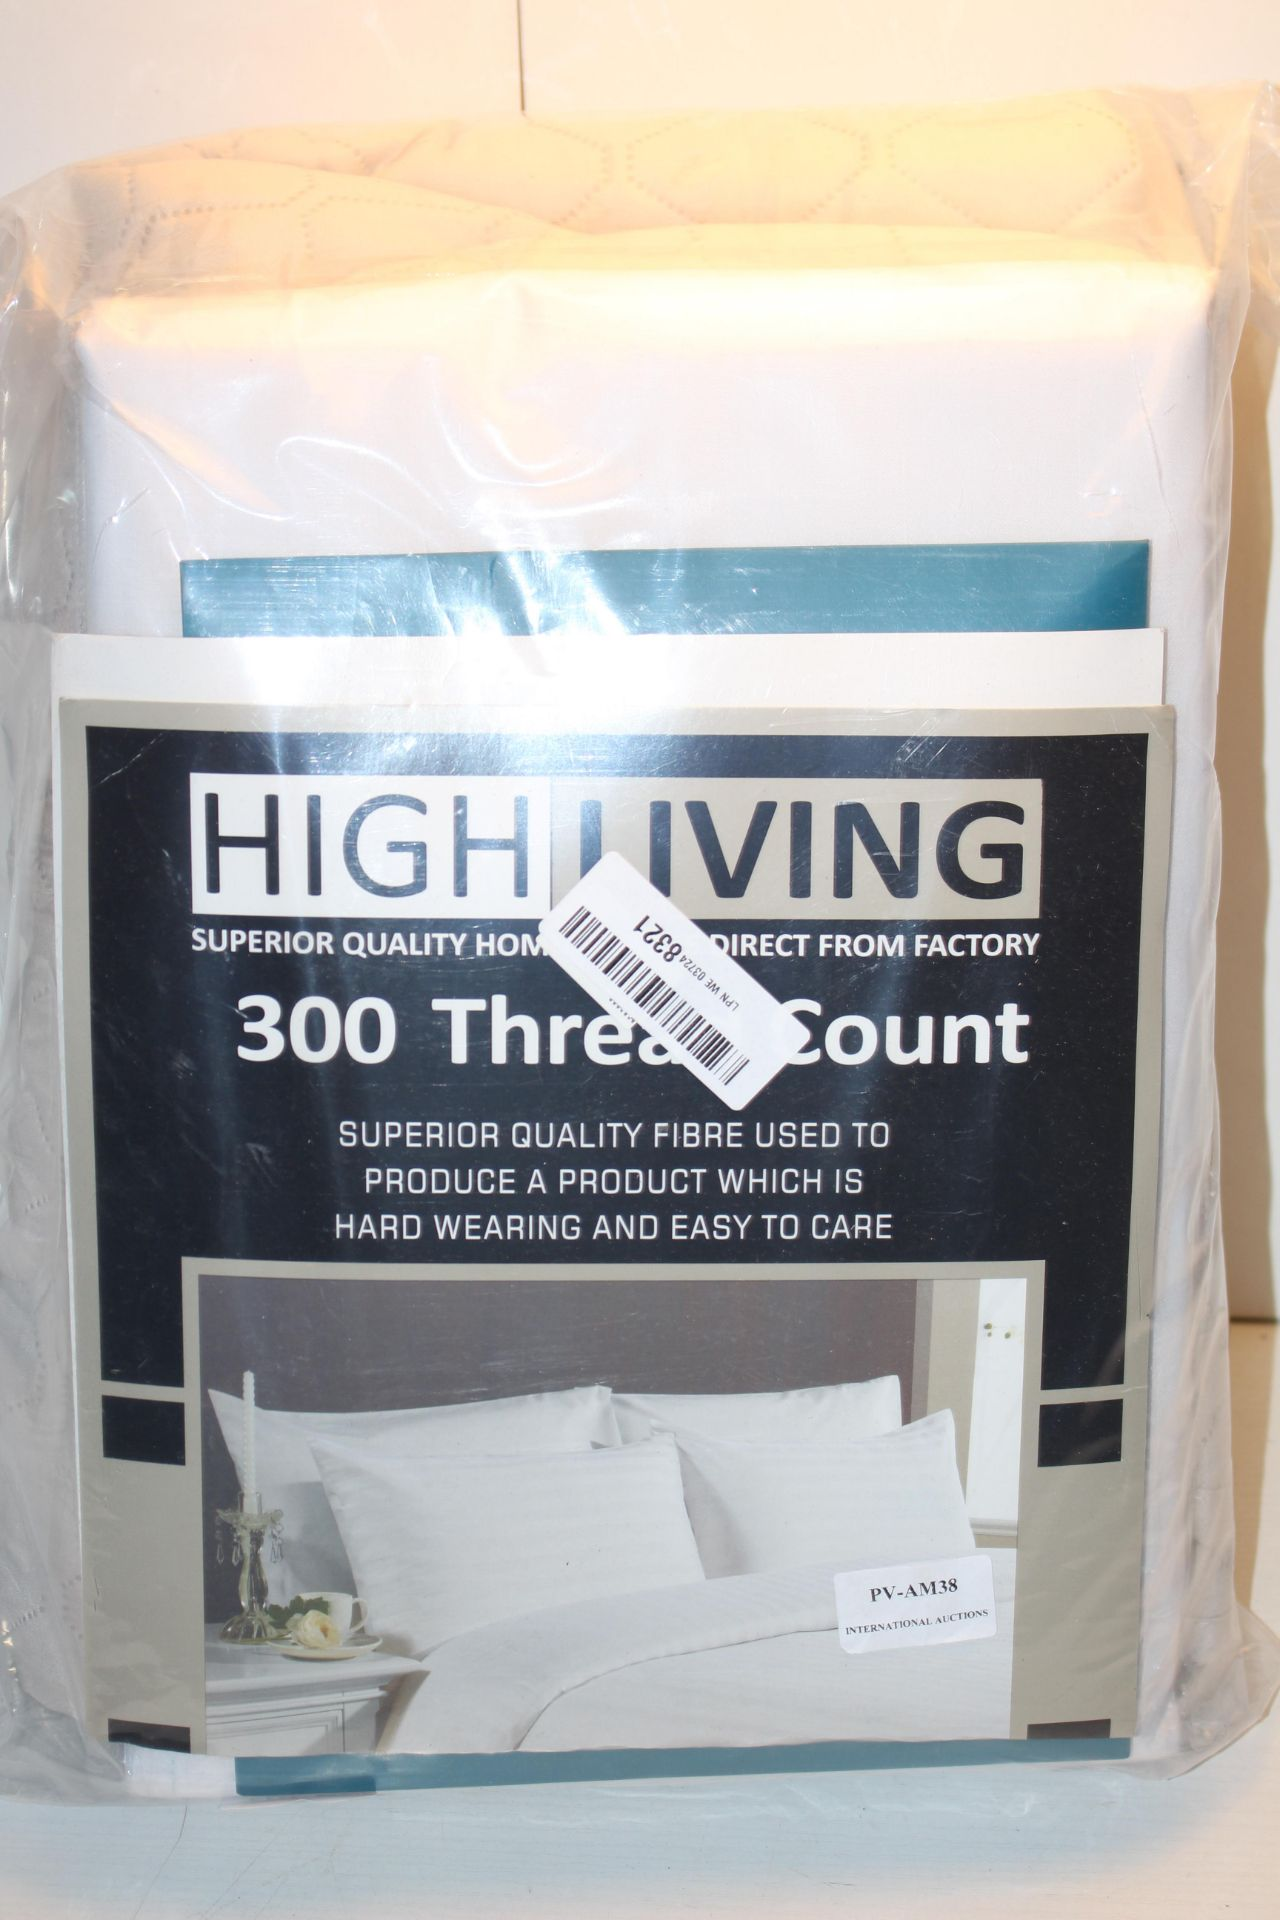 BAGGED HIGH LIVING 300 THREAD COUNT BEDDING SET (IMAGE DEPICTS STOCK)Condition ReportAppraisal